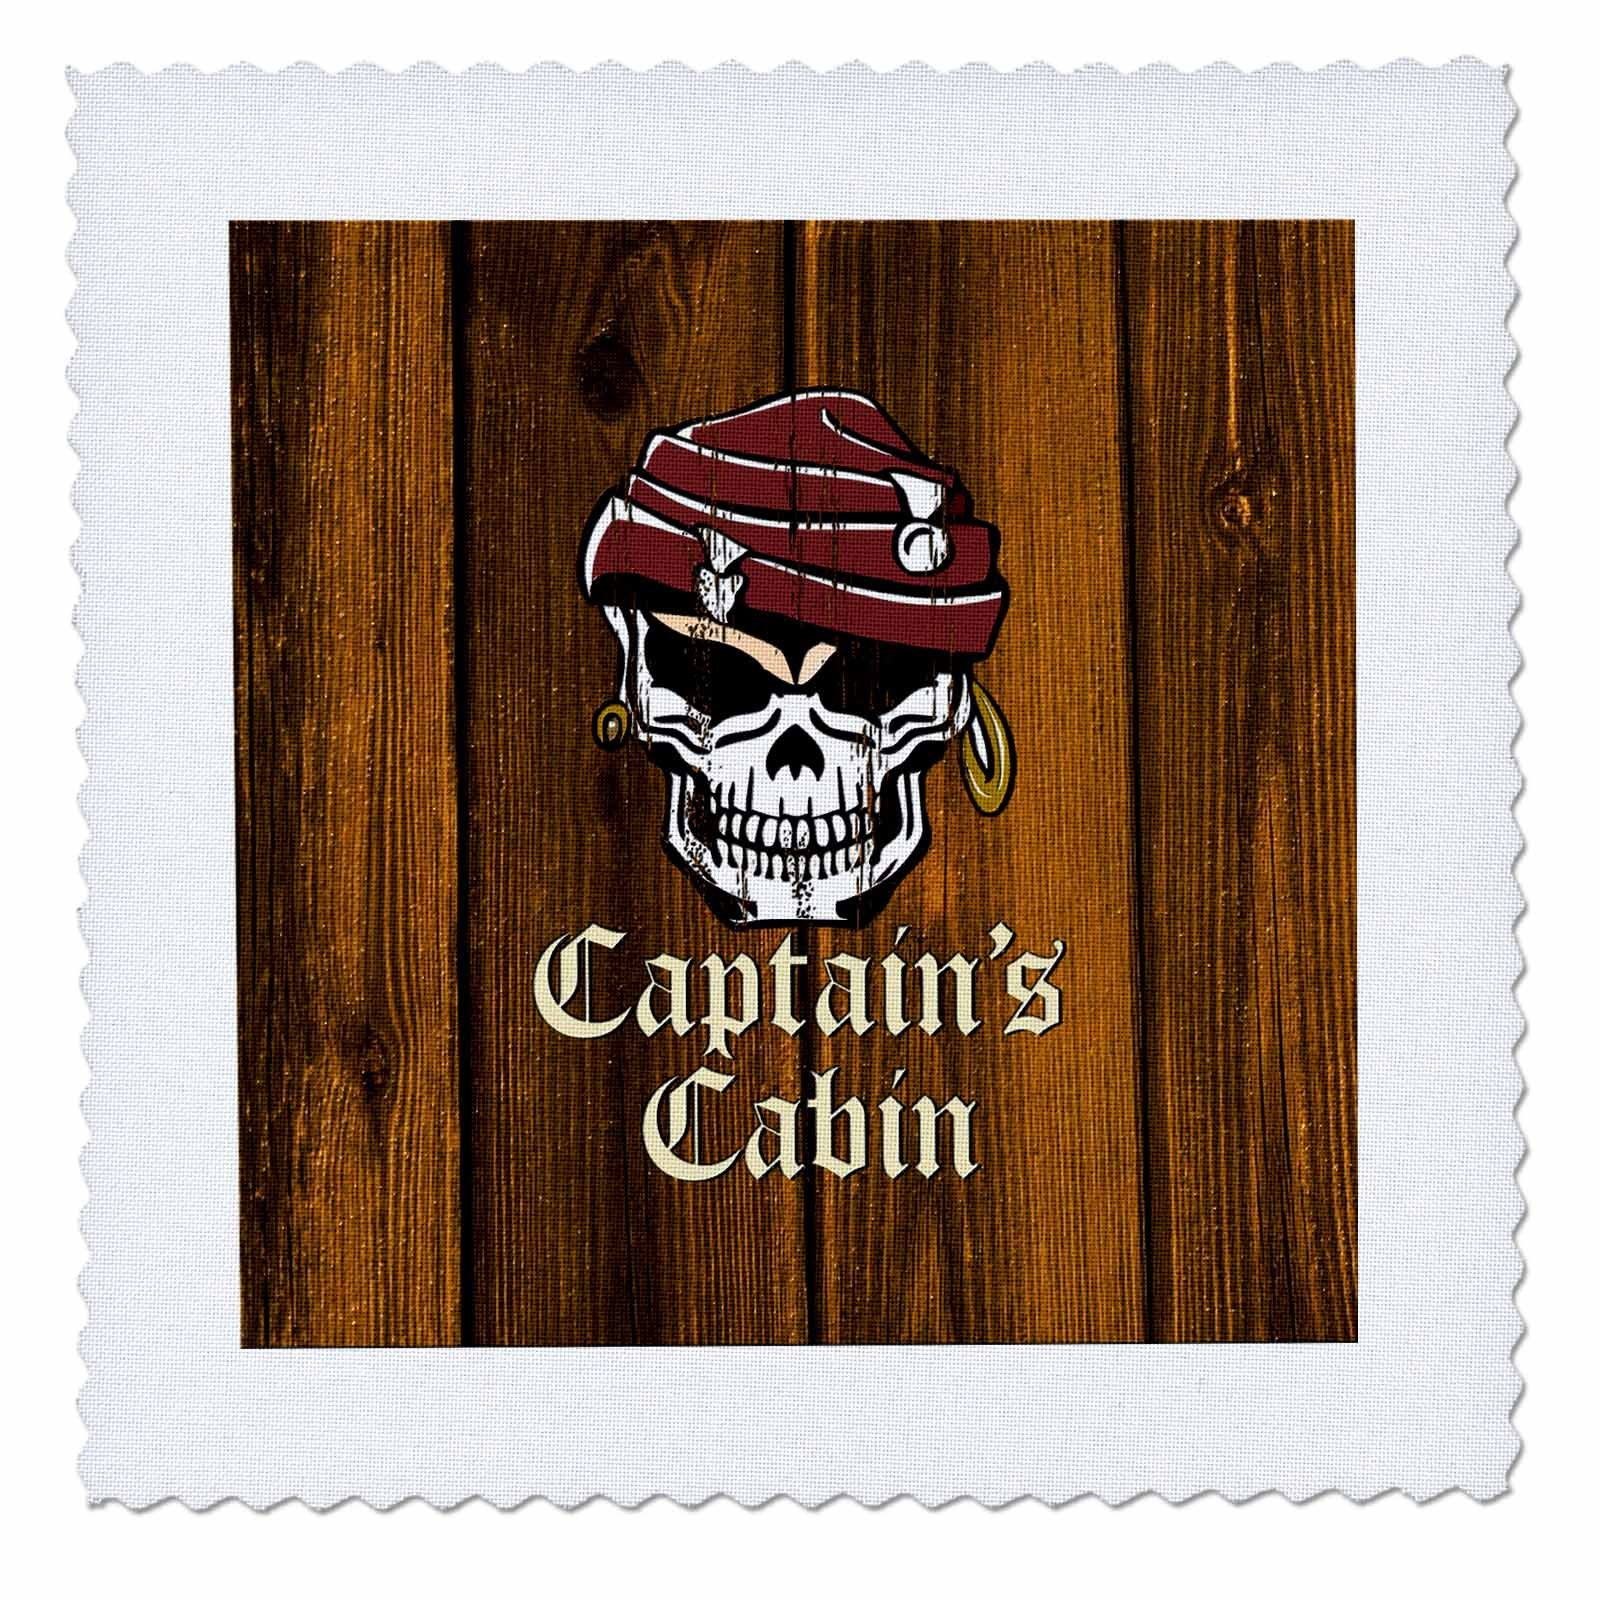 3dRose Russ Billington Nautical Designs - Pirate Skull Captains Cabin Design in Brown- not real wood - 18x18 inch quilt square (qs_261718_7)